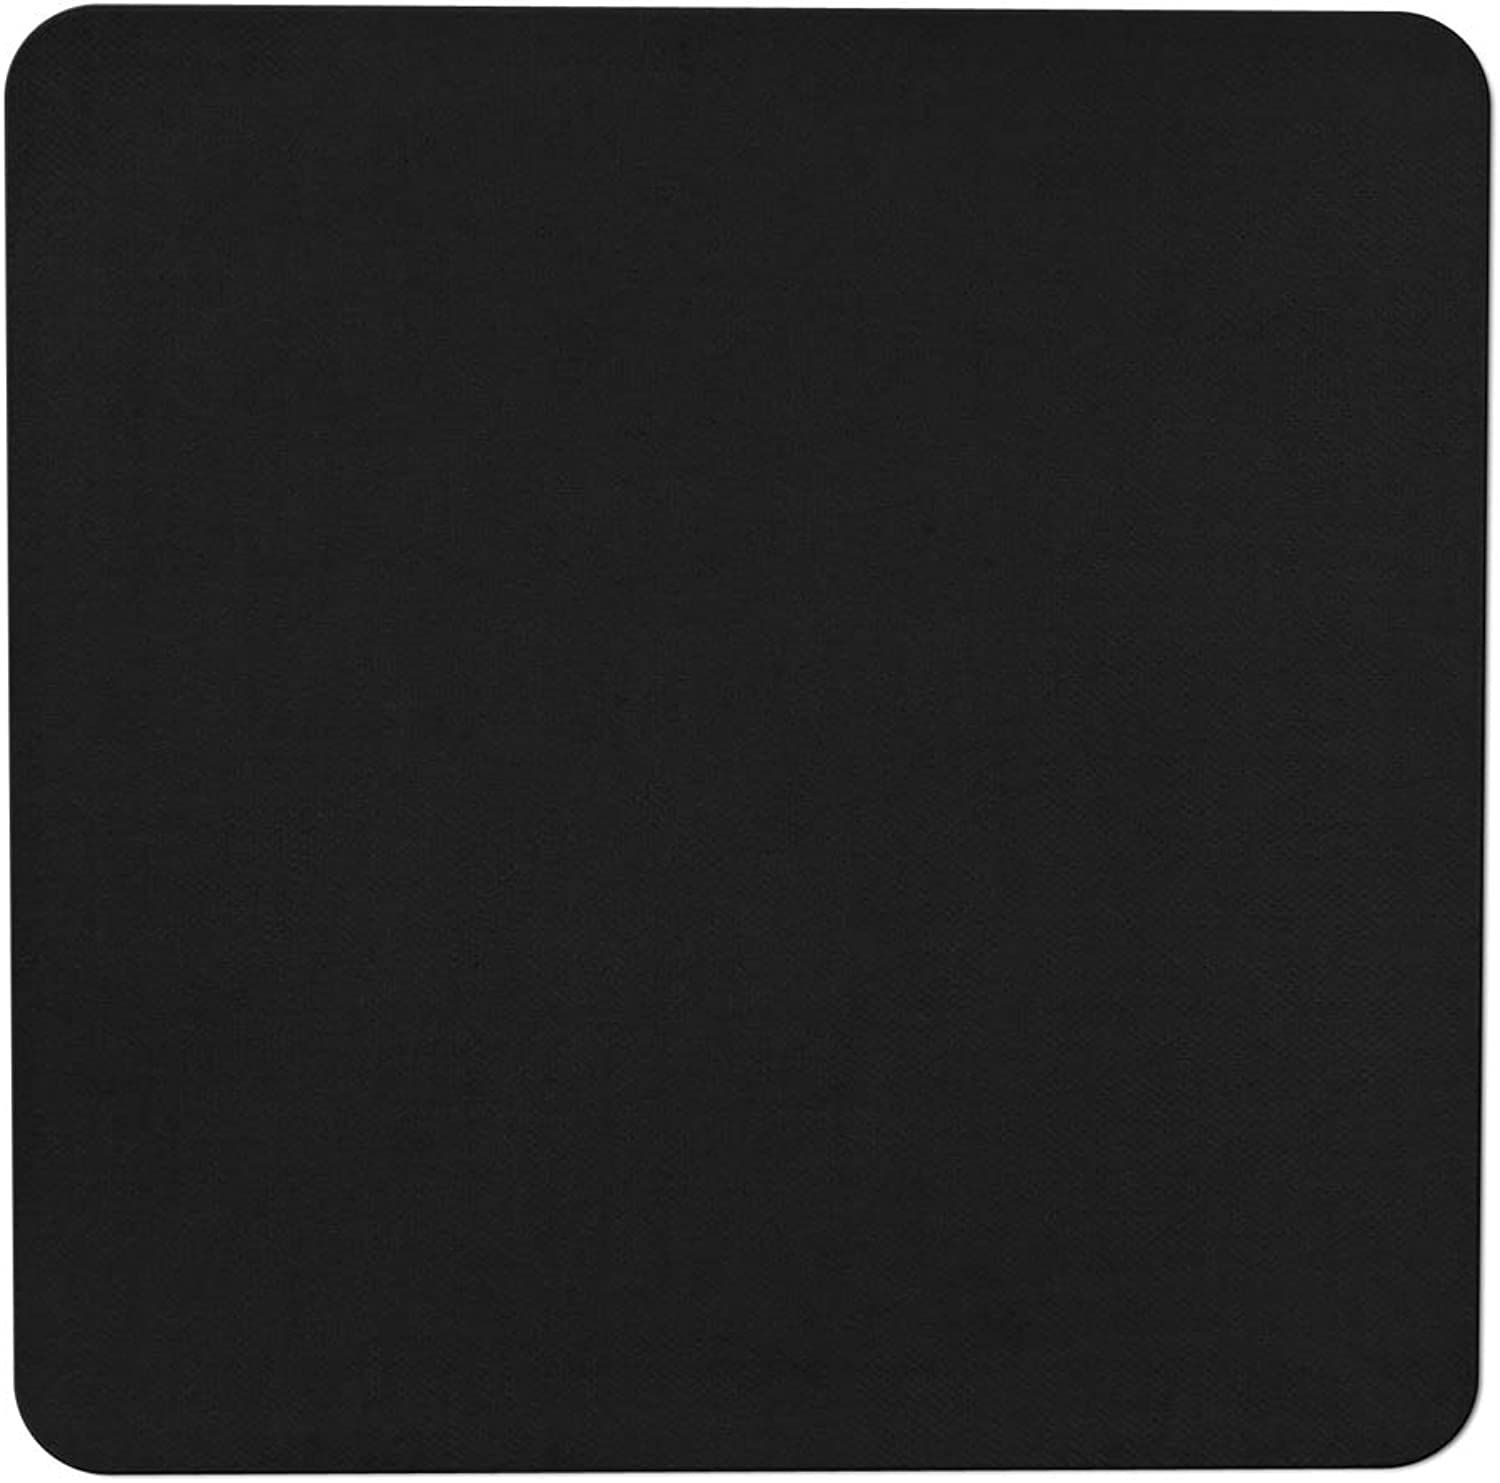 House, Home and More Skid-resistant Carpet Indoor Area Rug Floor Mat - Black - 3' X 3' - Many Other Sizes to Choose From